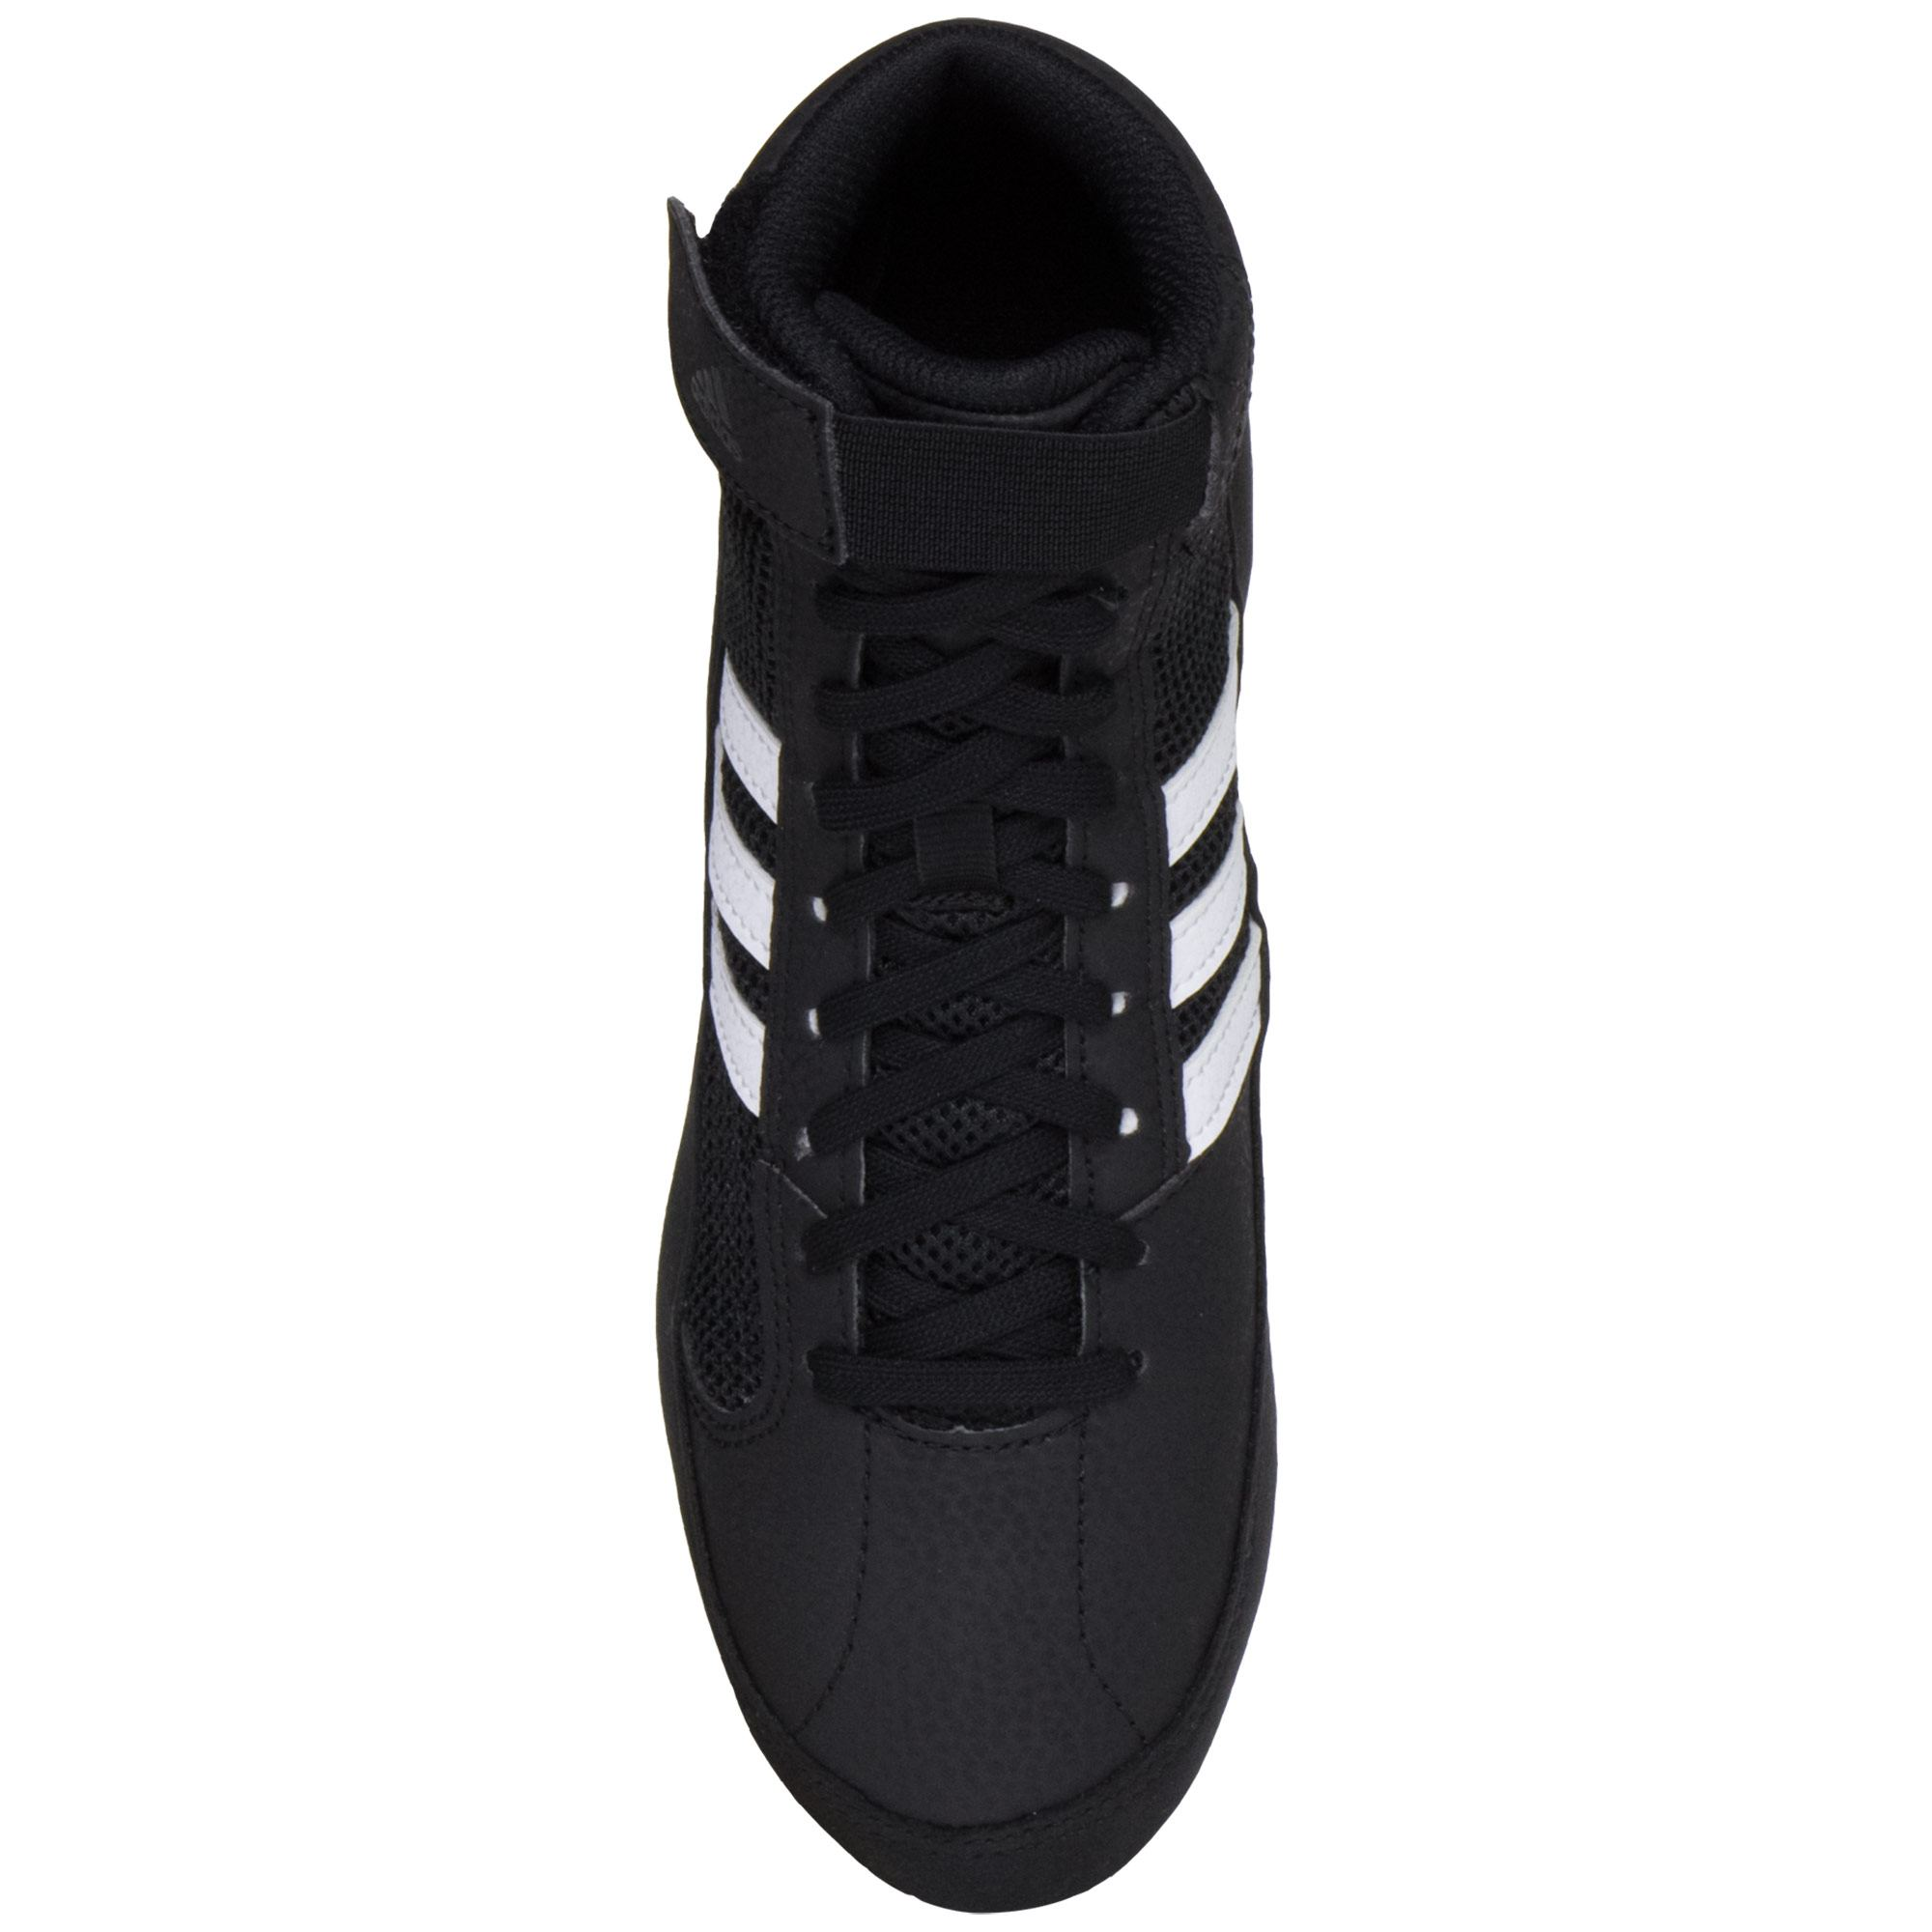 027245cd1a9ab6 Adidas HVC 2 Youth Laced Black White Beige mainAdidas HVC 2 Youth Laced  Black White Beige insideAdidas HVC 2 Youth Laced Black White Beige ...